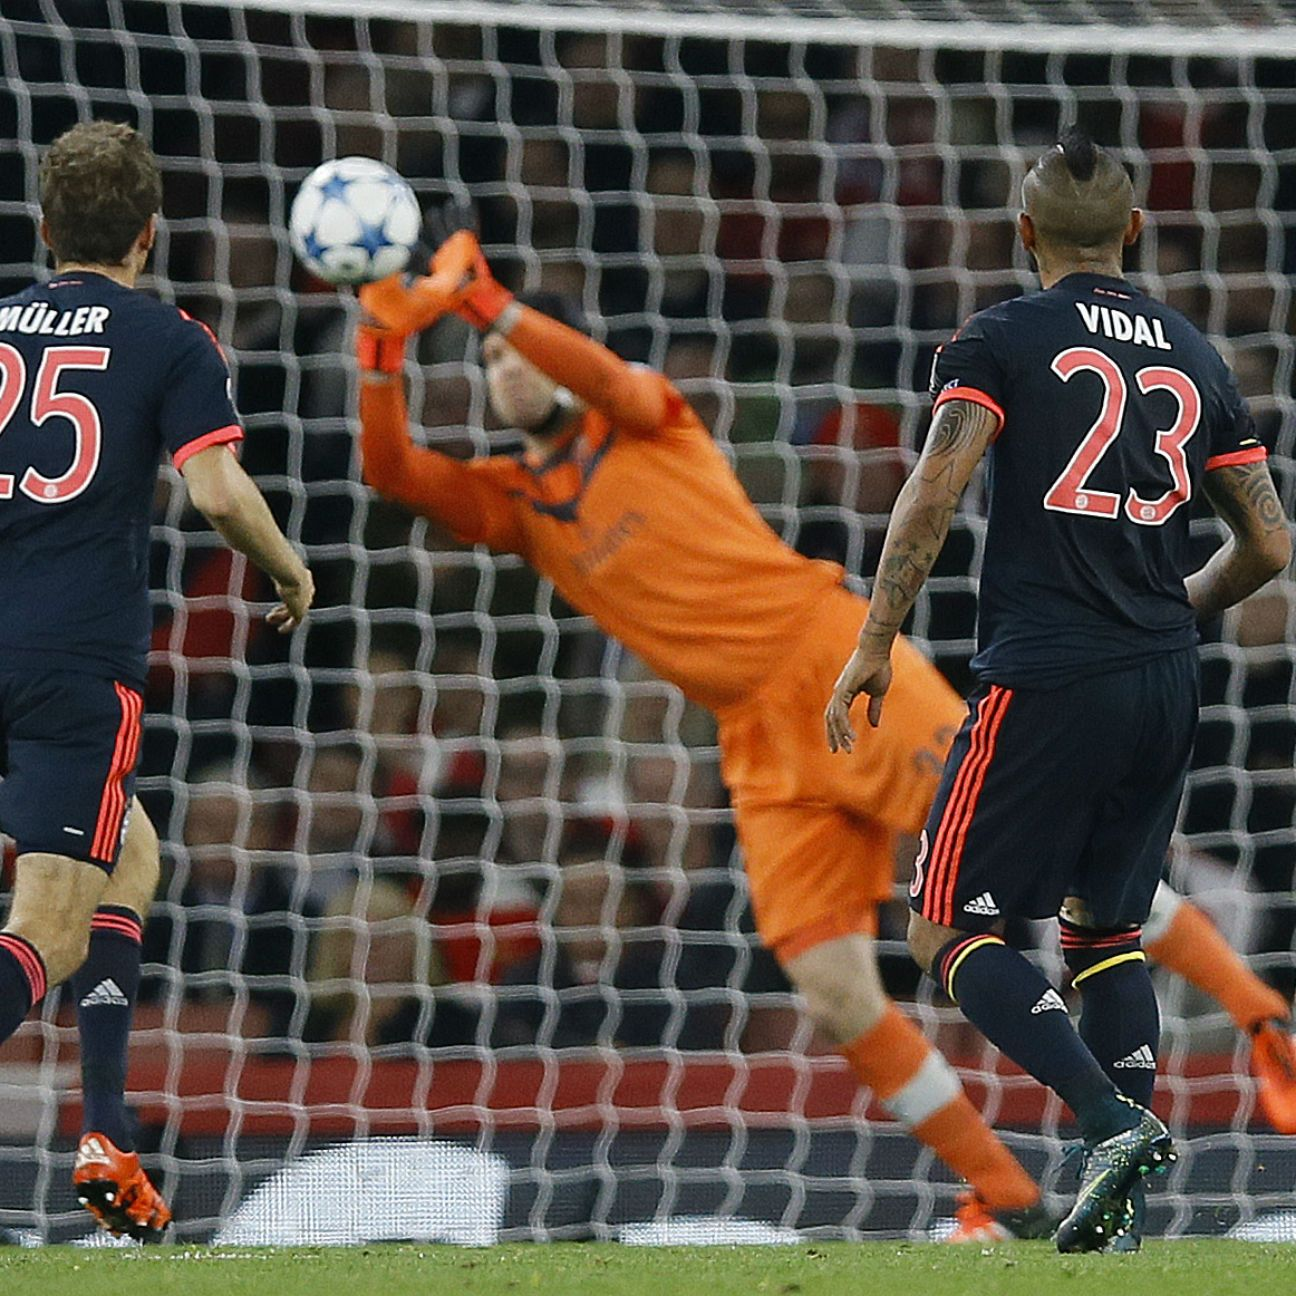 Bayern Munich will be looking for better success against Petr Cech in the Arsenal goal.